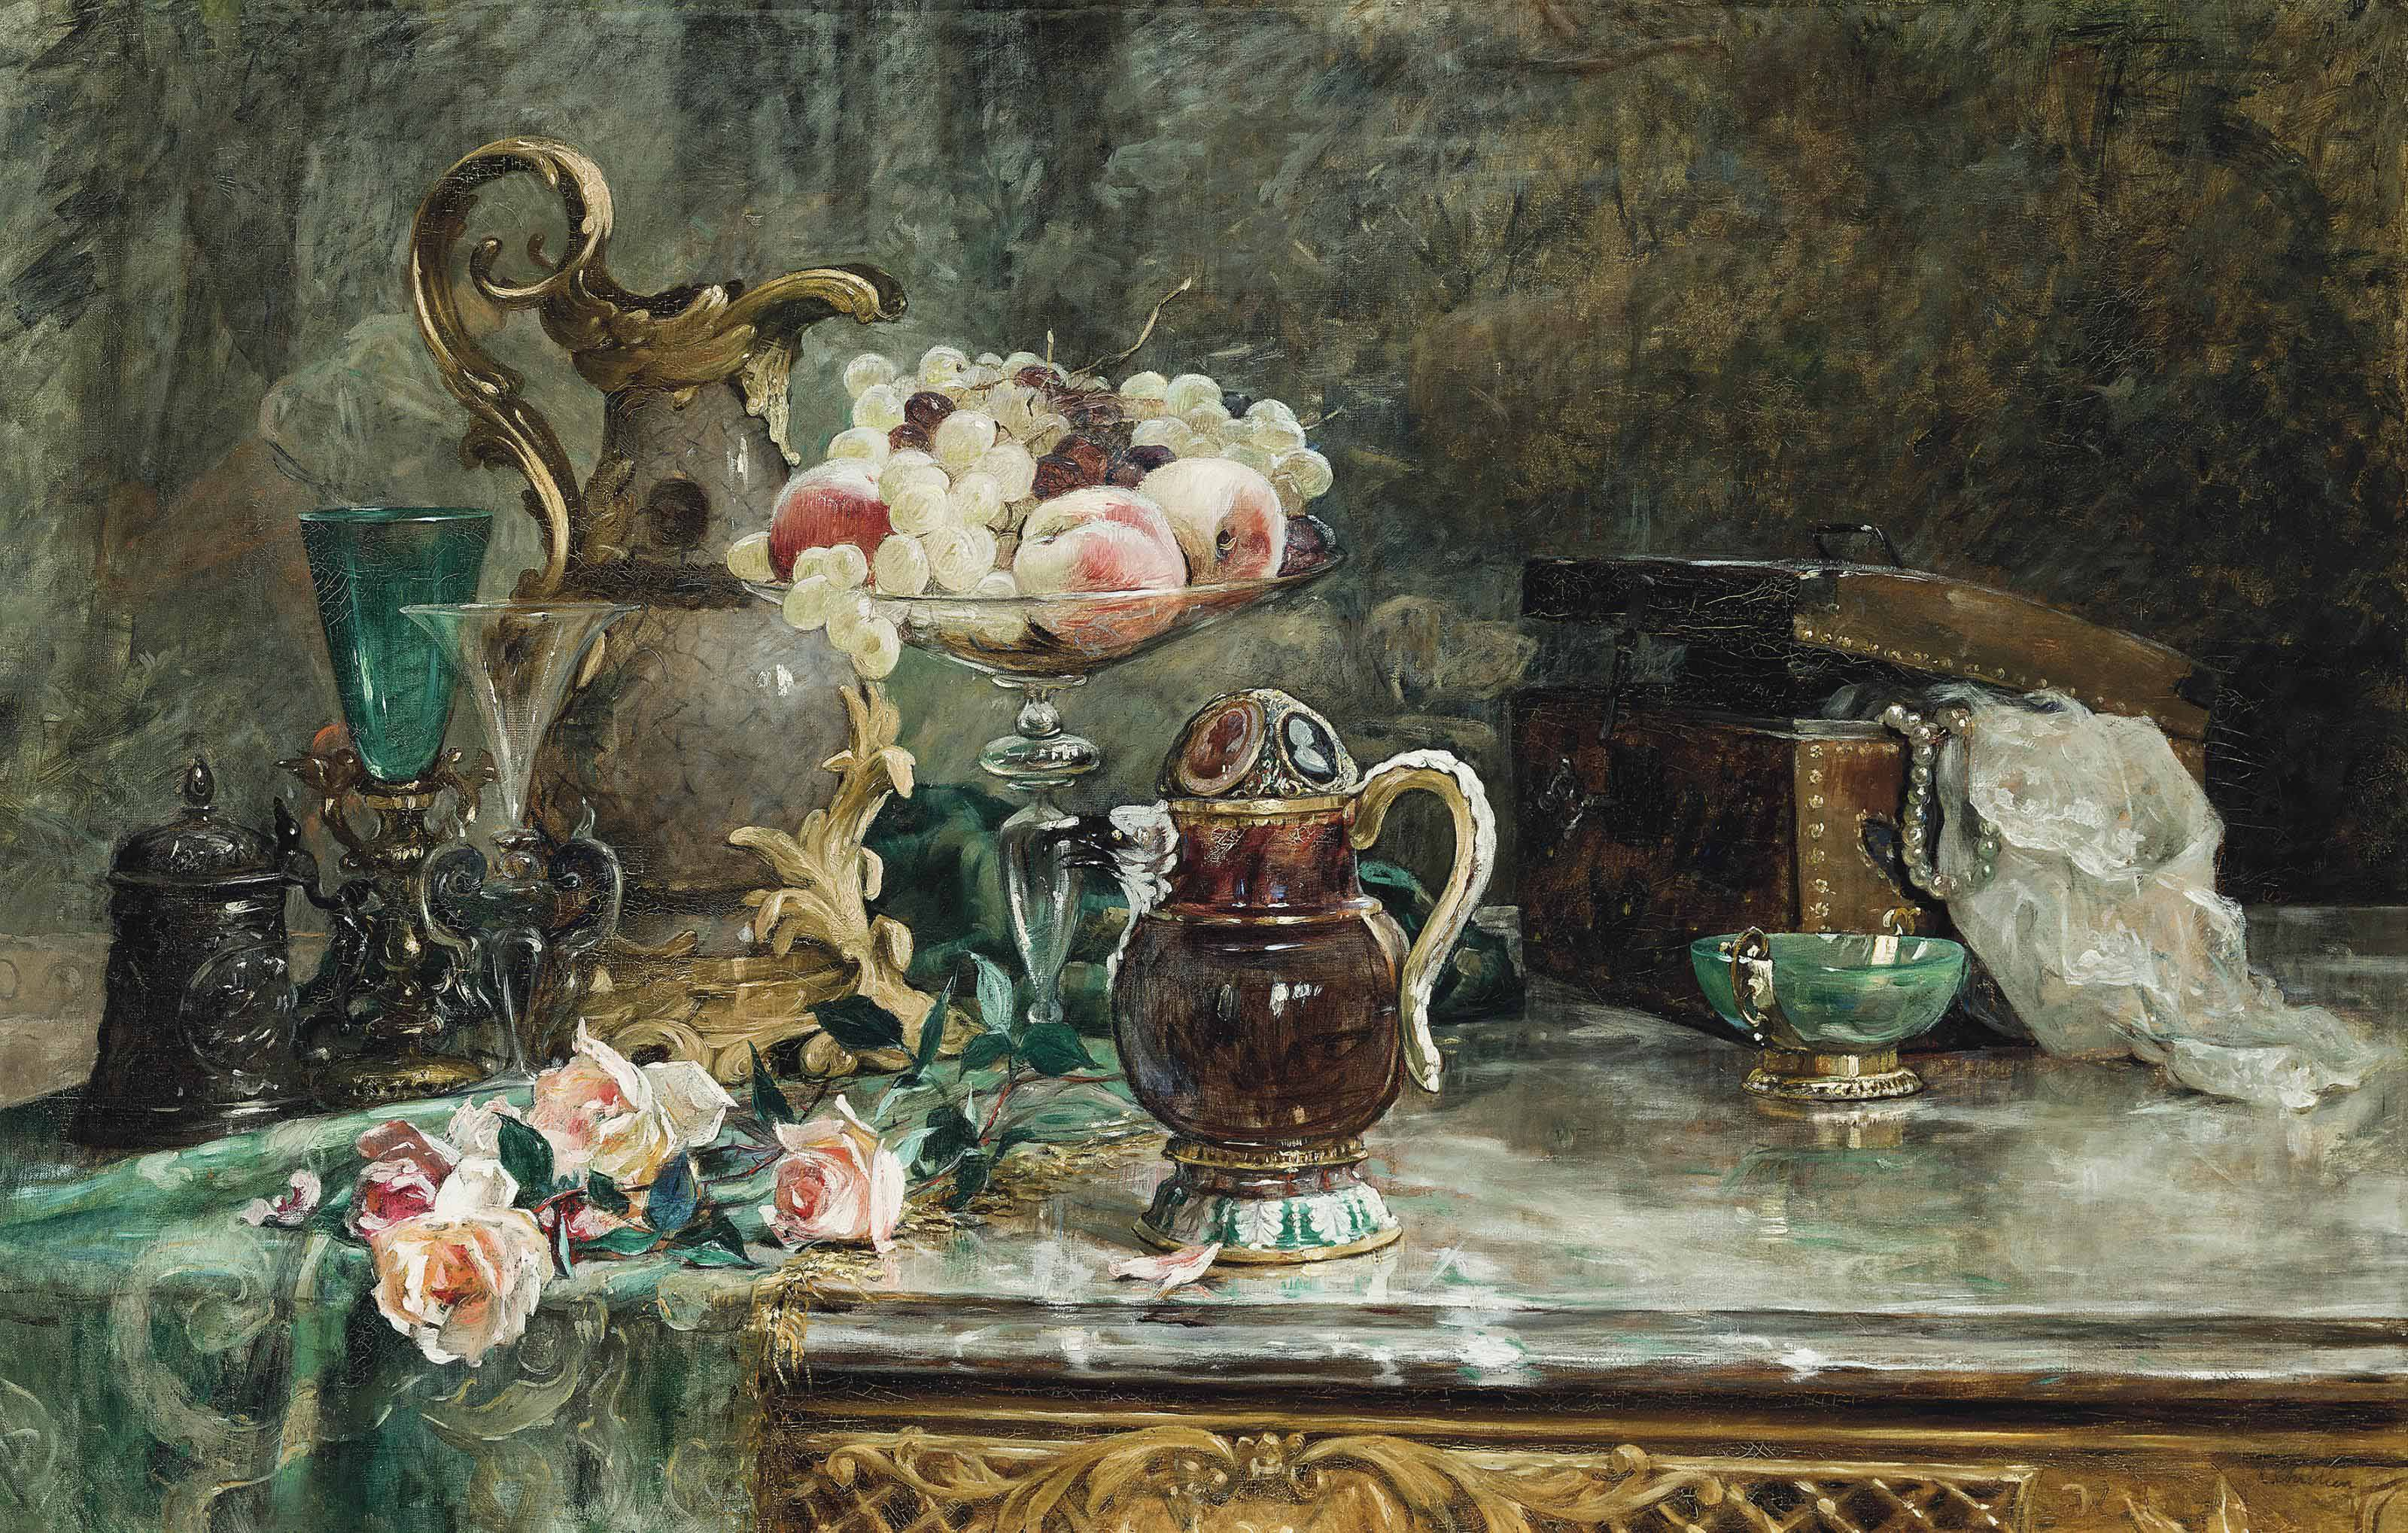 Roses, fruits and jewellery on a ledge